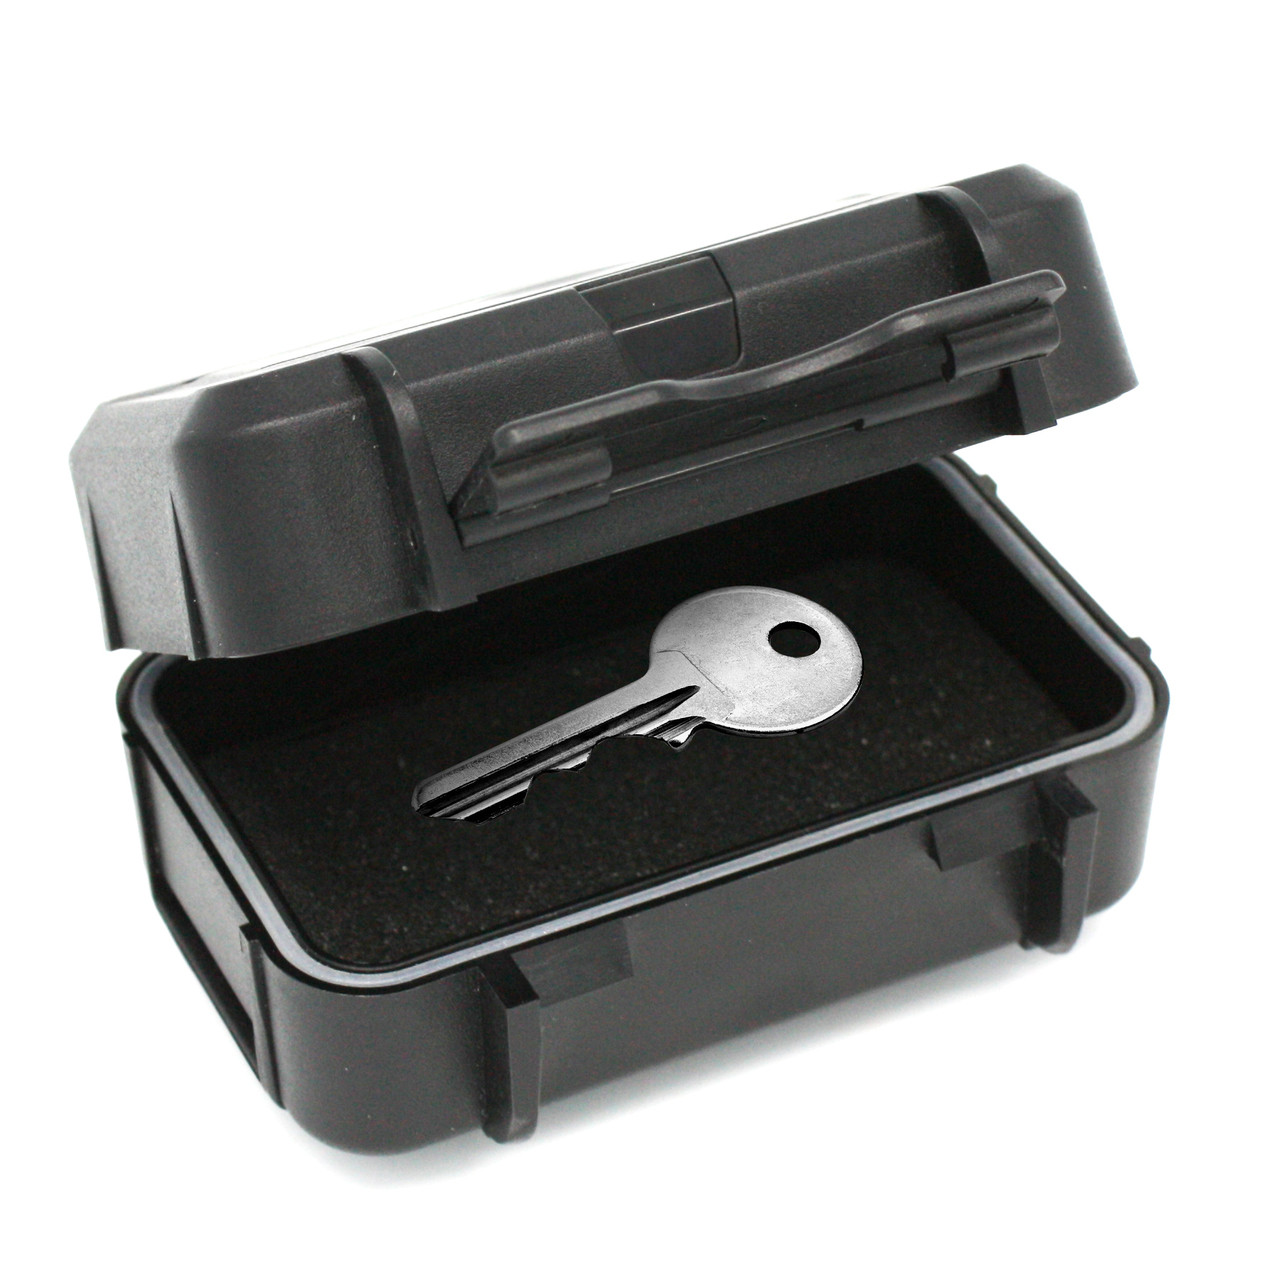 E1090 iTrail® Roc Box Key Inside